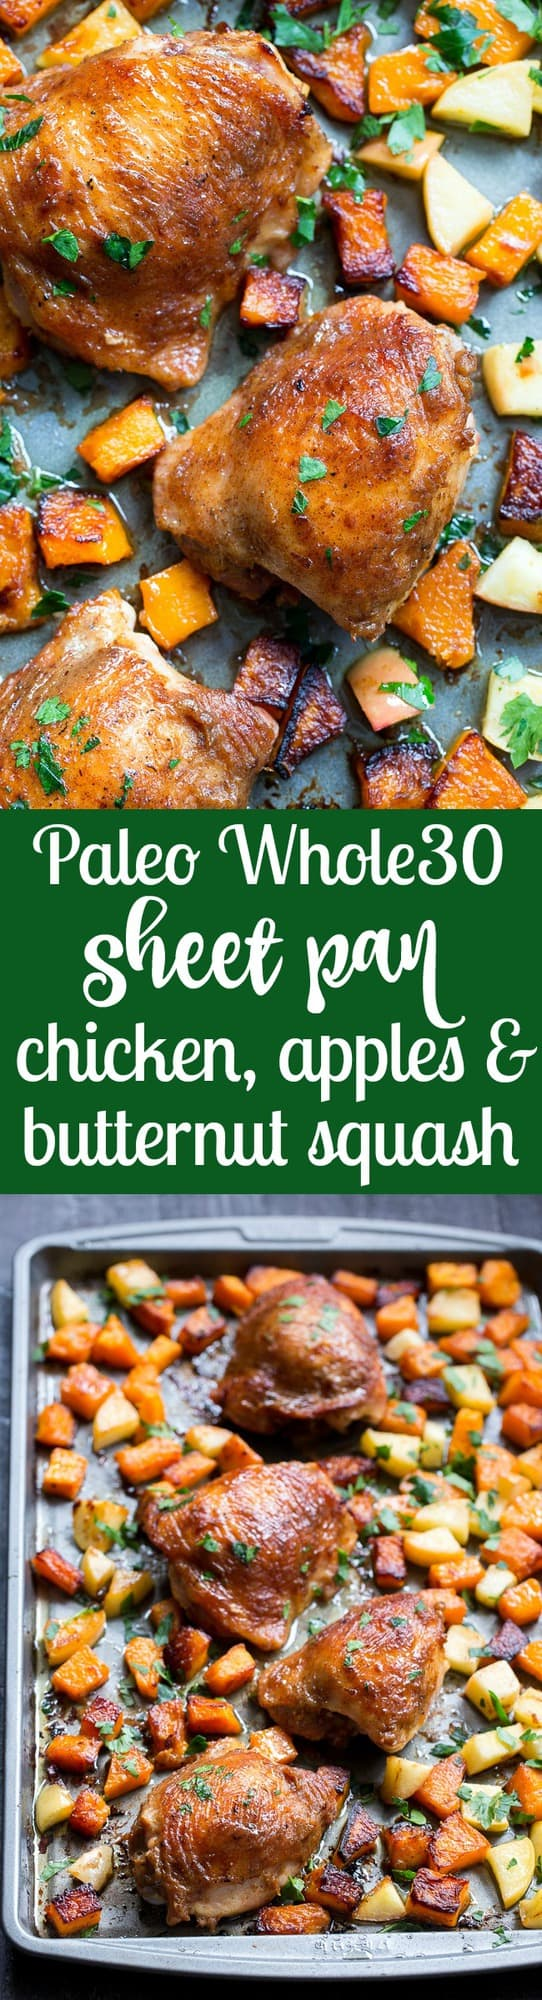 This savory and sweet glazed sheet pan chicken with butternut squash and apples is the perfect no-fuss, one-pan paleo and Whole30 dinner.  With a date-sweetened glaze, it's free of added sugar but packed with flavor and kid approved!